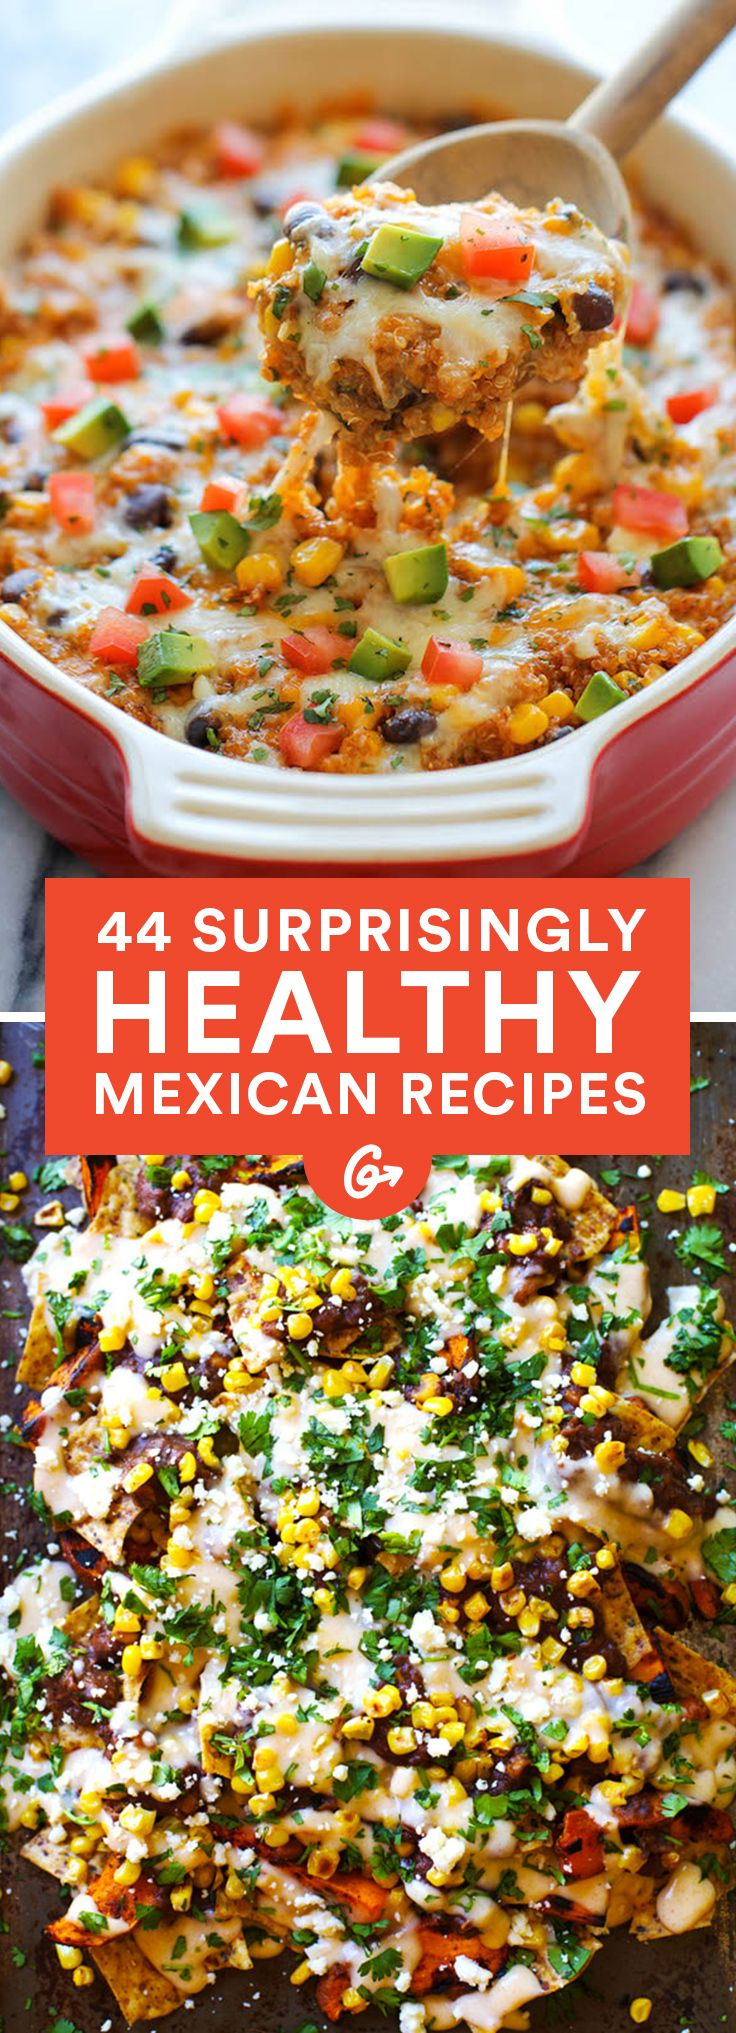 Photo of 44 Surprisingly Healthy Mexican Dinner Ideas and Recipes